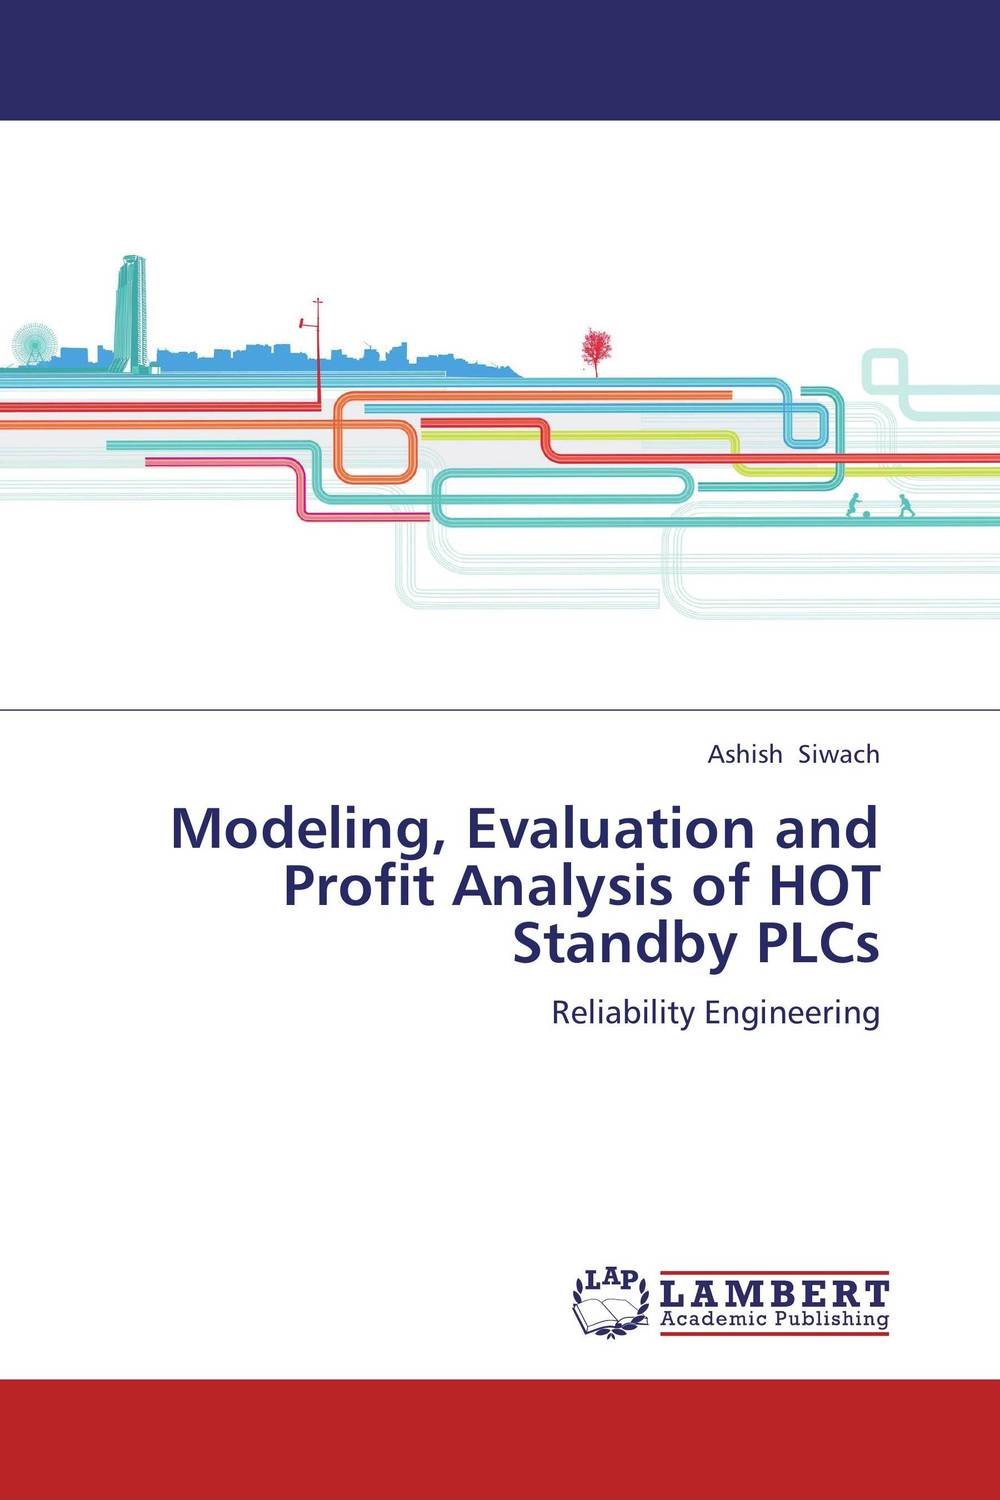 Modeling, Evaluation and Profit Analysis of HOT Standby PLCs paichuan chen extending the quandt ramsey modeling to survival analysis